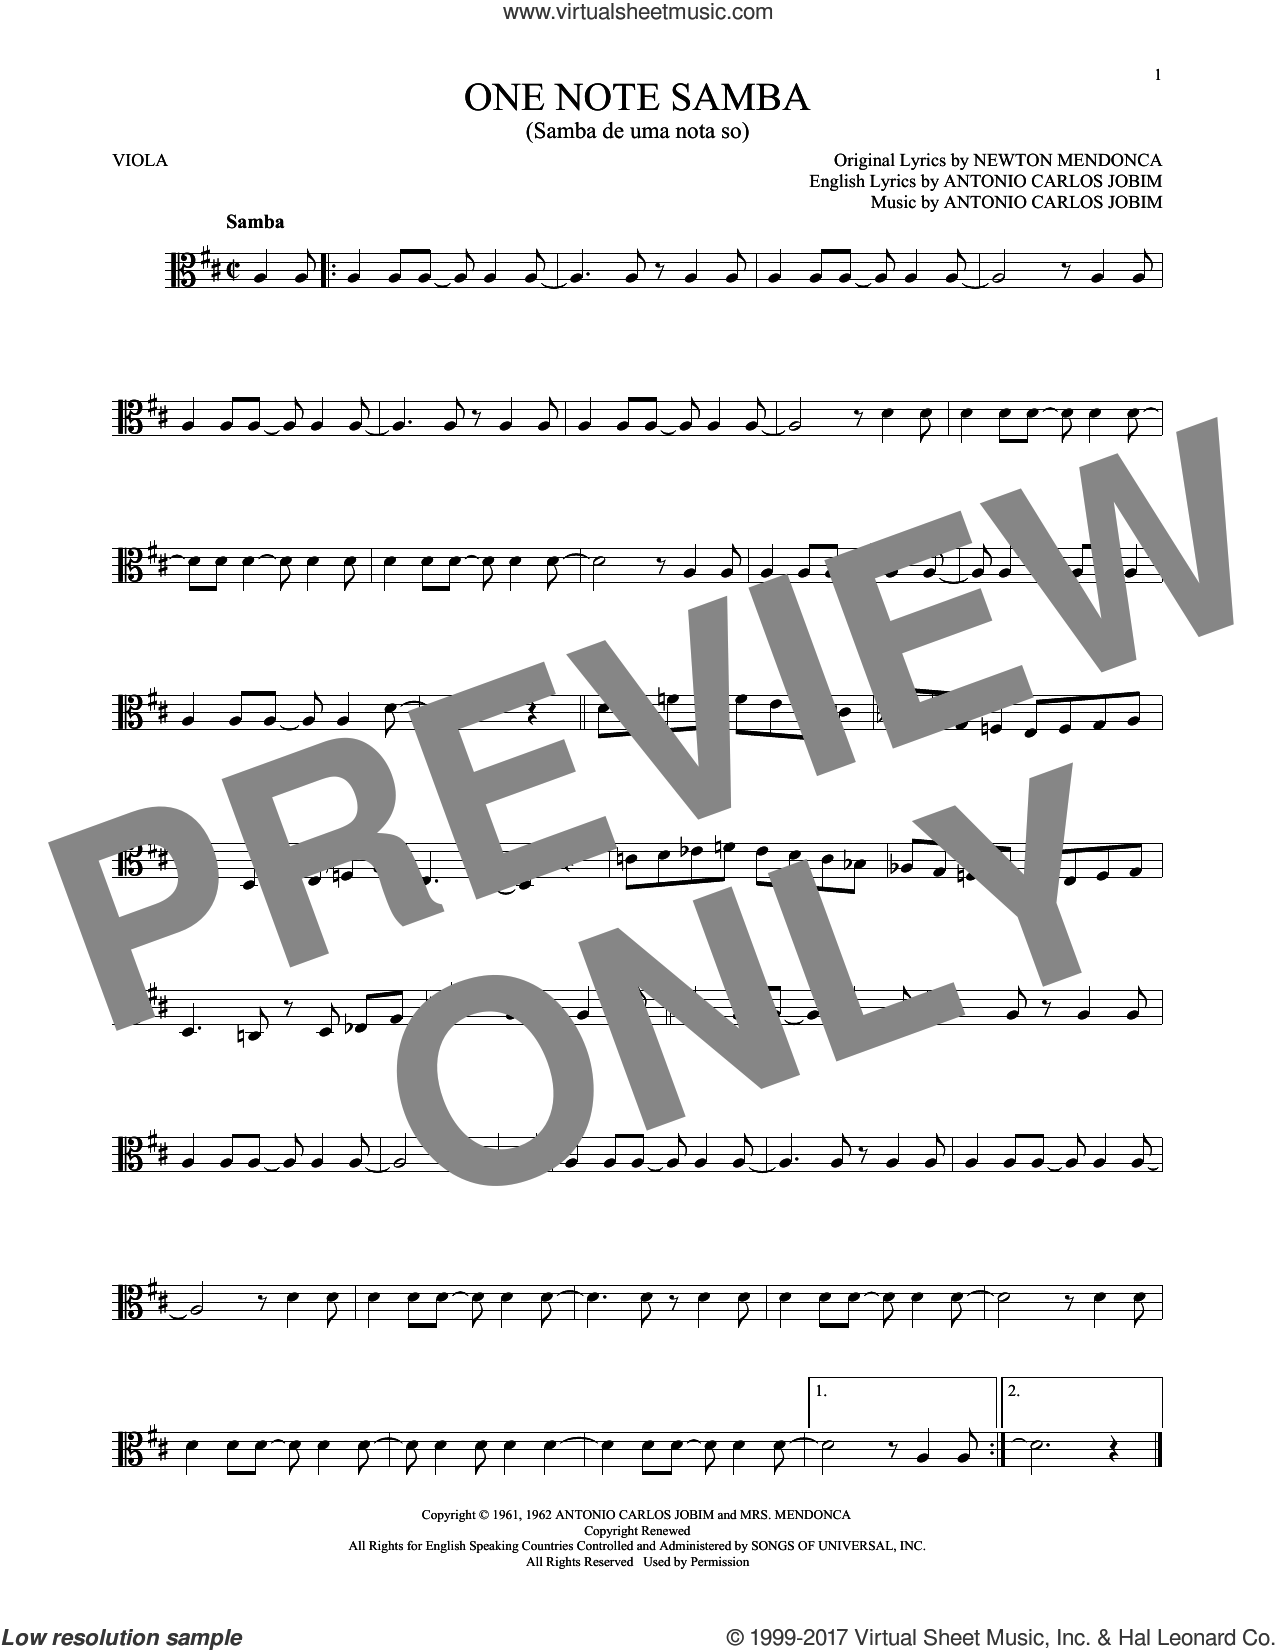 One Note Samba (Samba De Uma Nota So) sheet music for viola solo by Antonio Carlos Jobim. Score Image Preview.